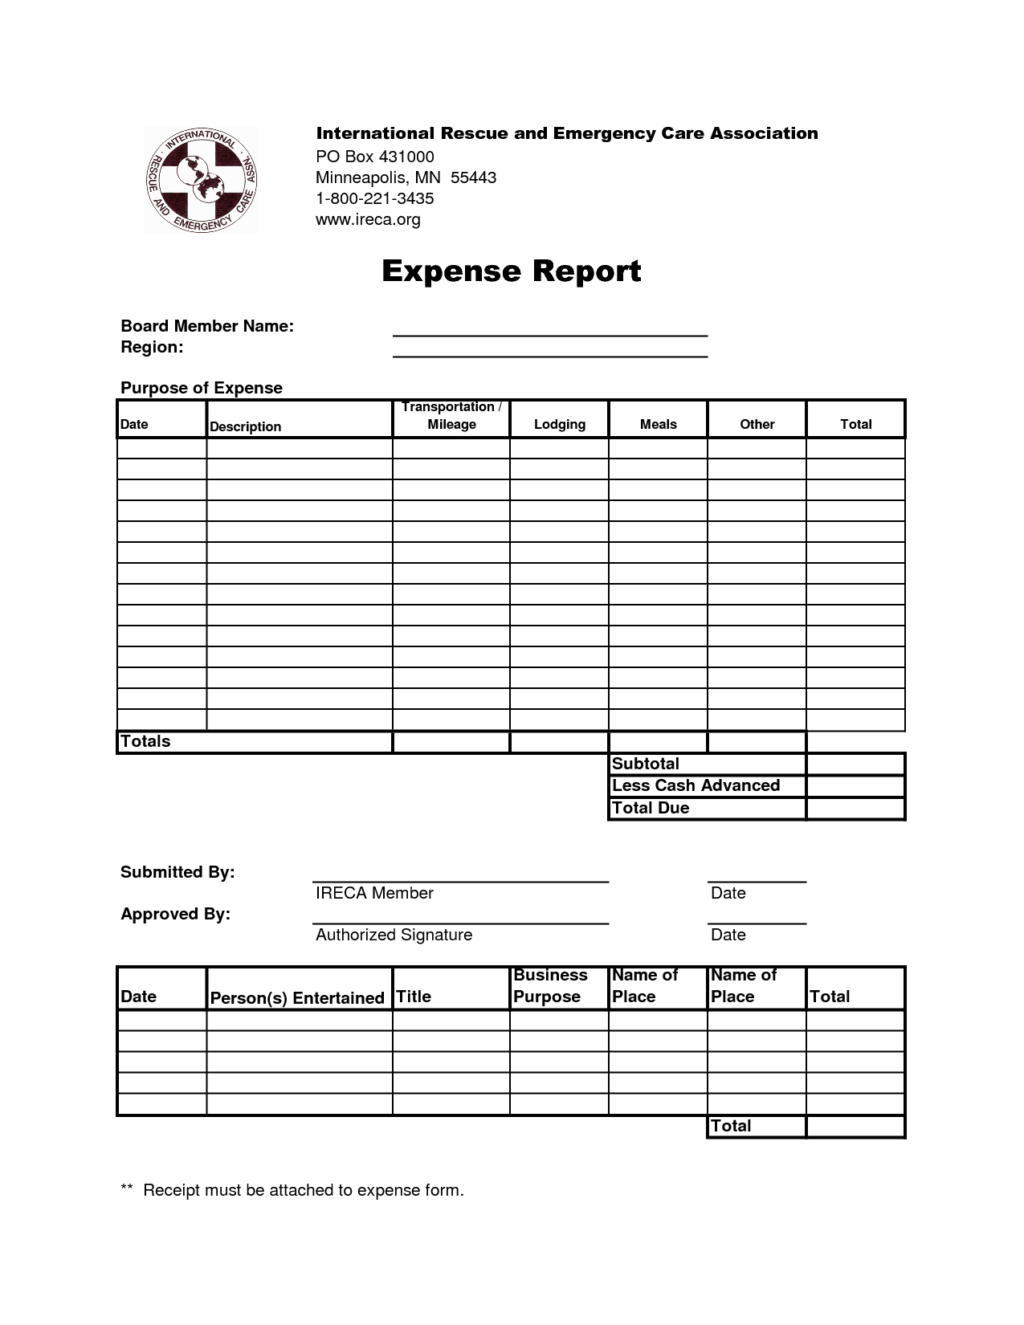 Expense Report Program